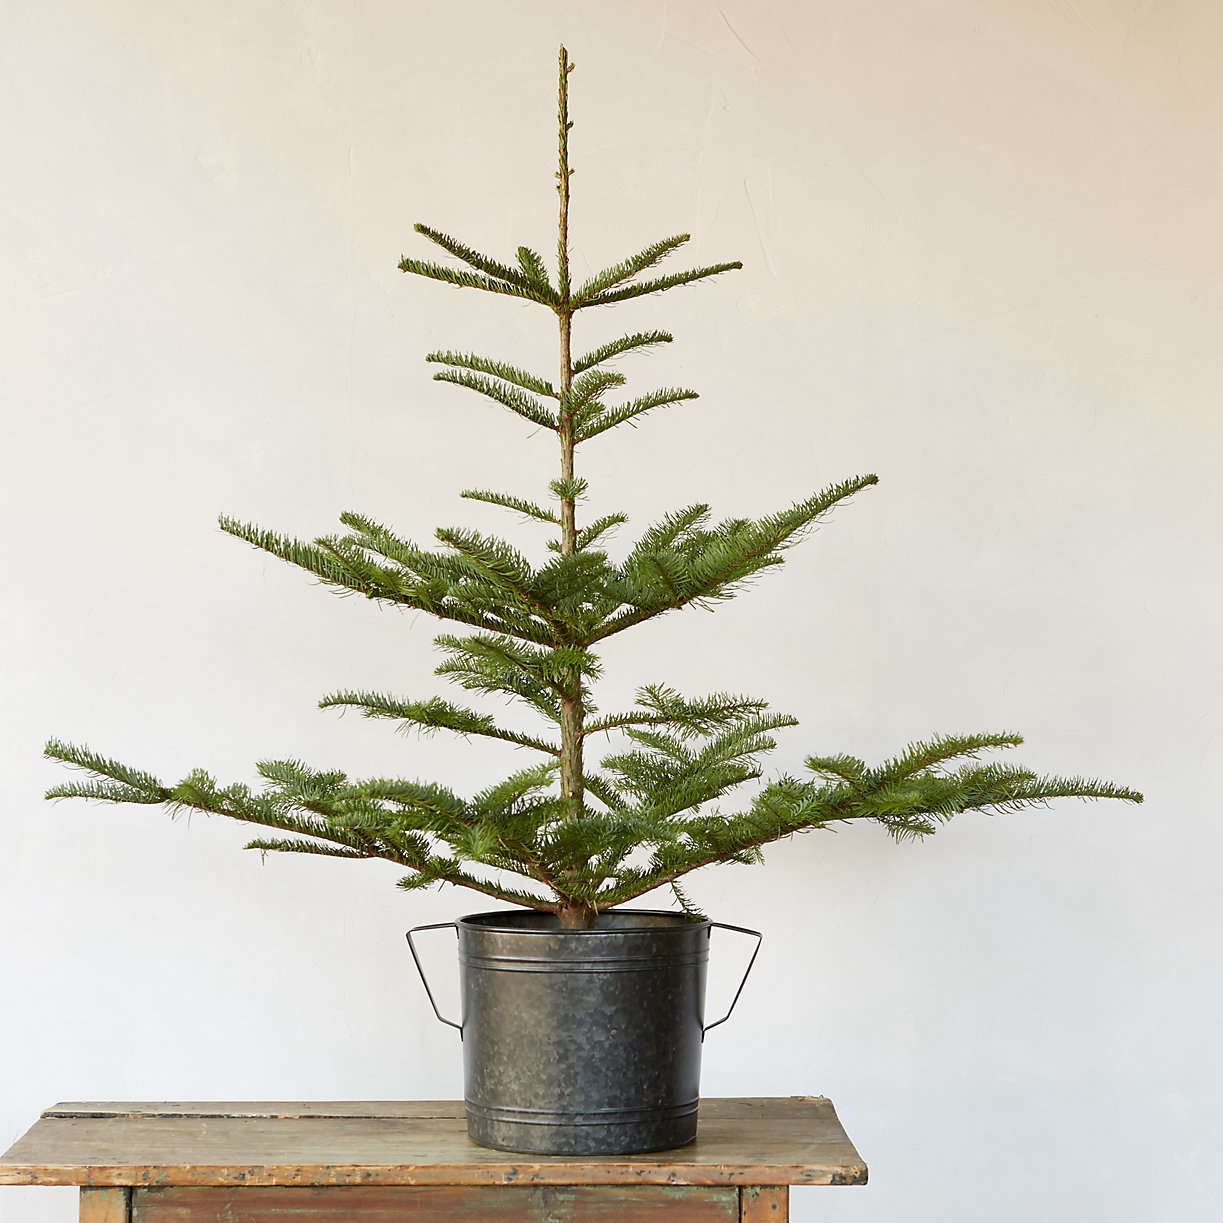 10 Easy Pieces: Tabletop Christmas Trees - The Organized Home